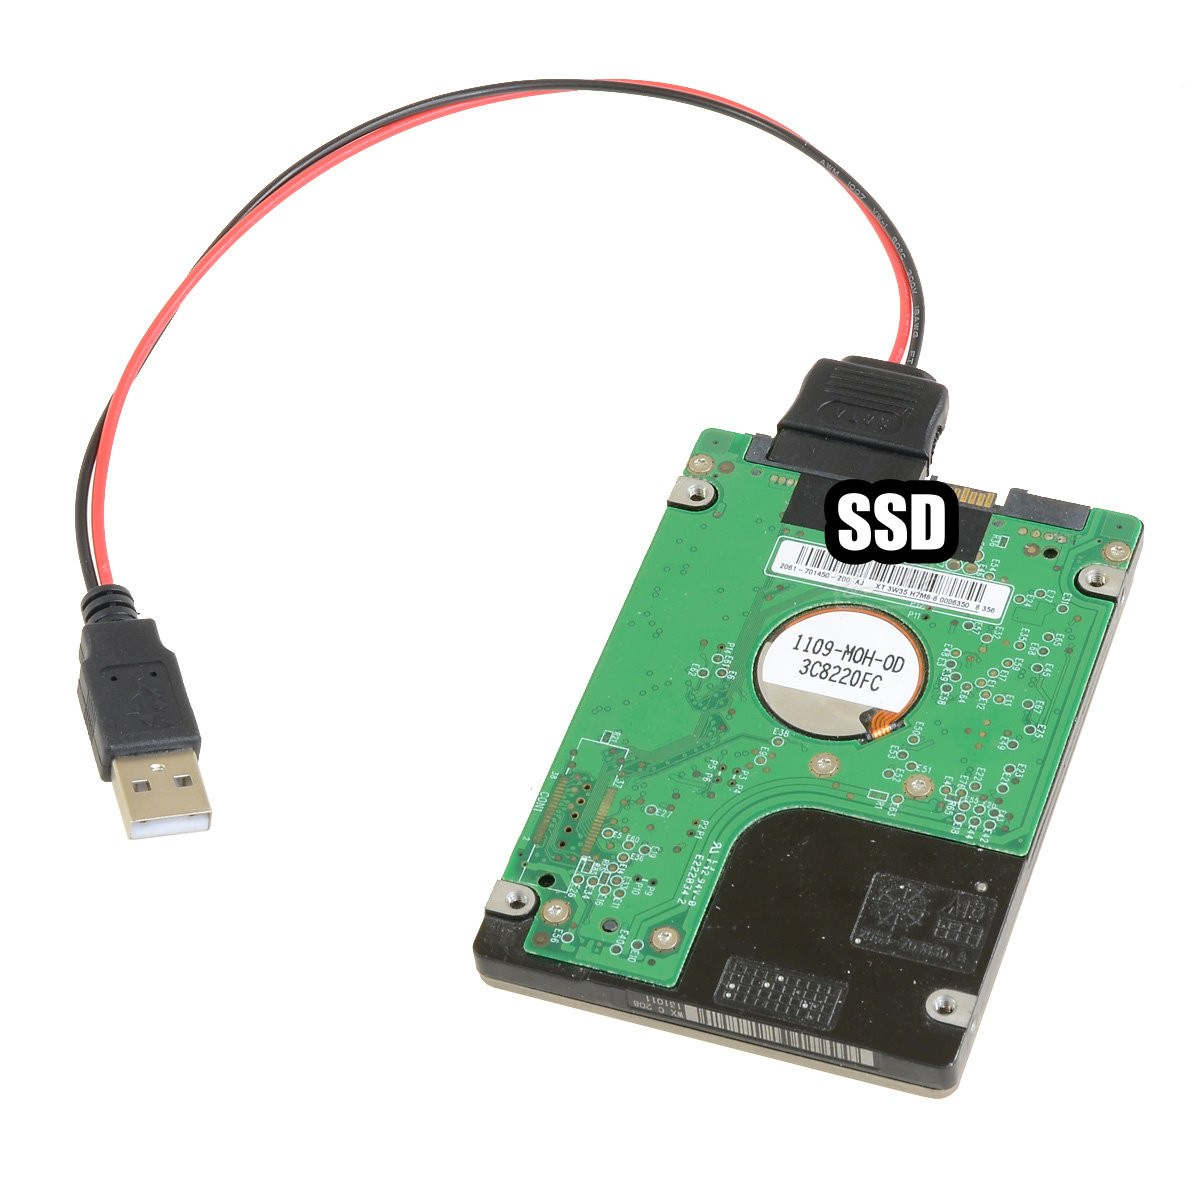 Sata Usb Adapter Wire Diagram How To Make Sata To Usb